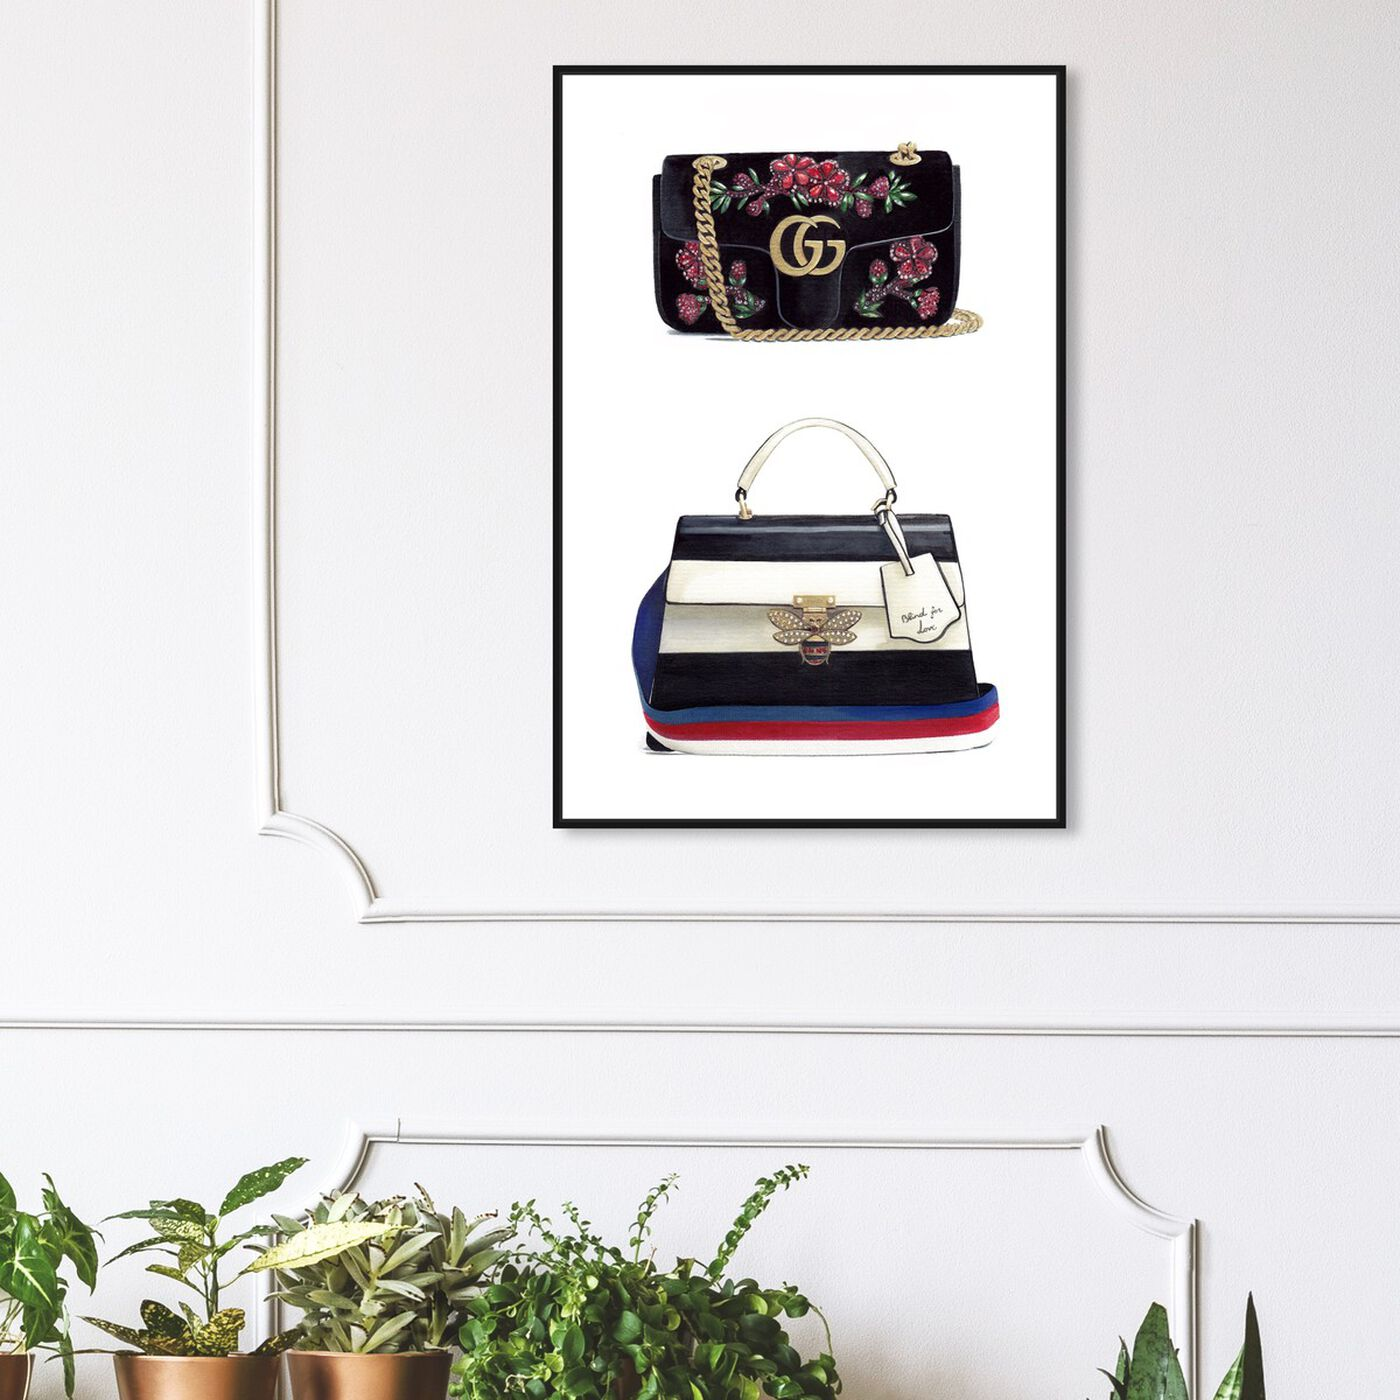 Hanging view of Doll Memories - New Collection featuring fashion and glam and handbags art.